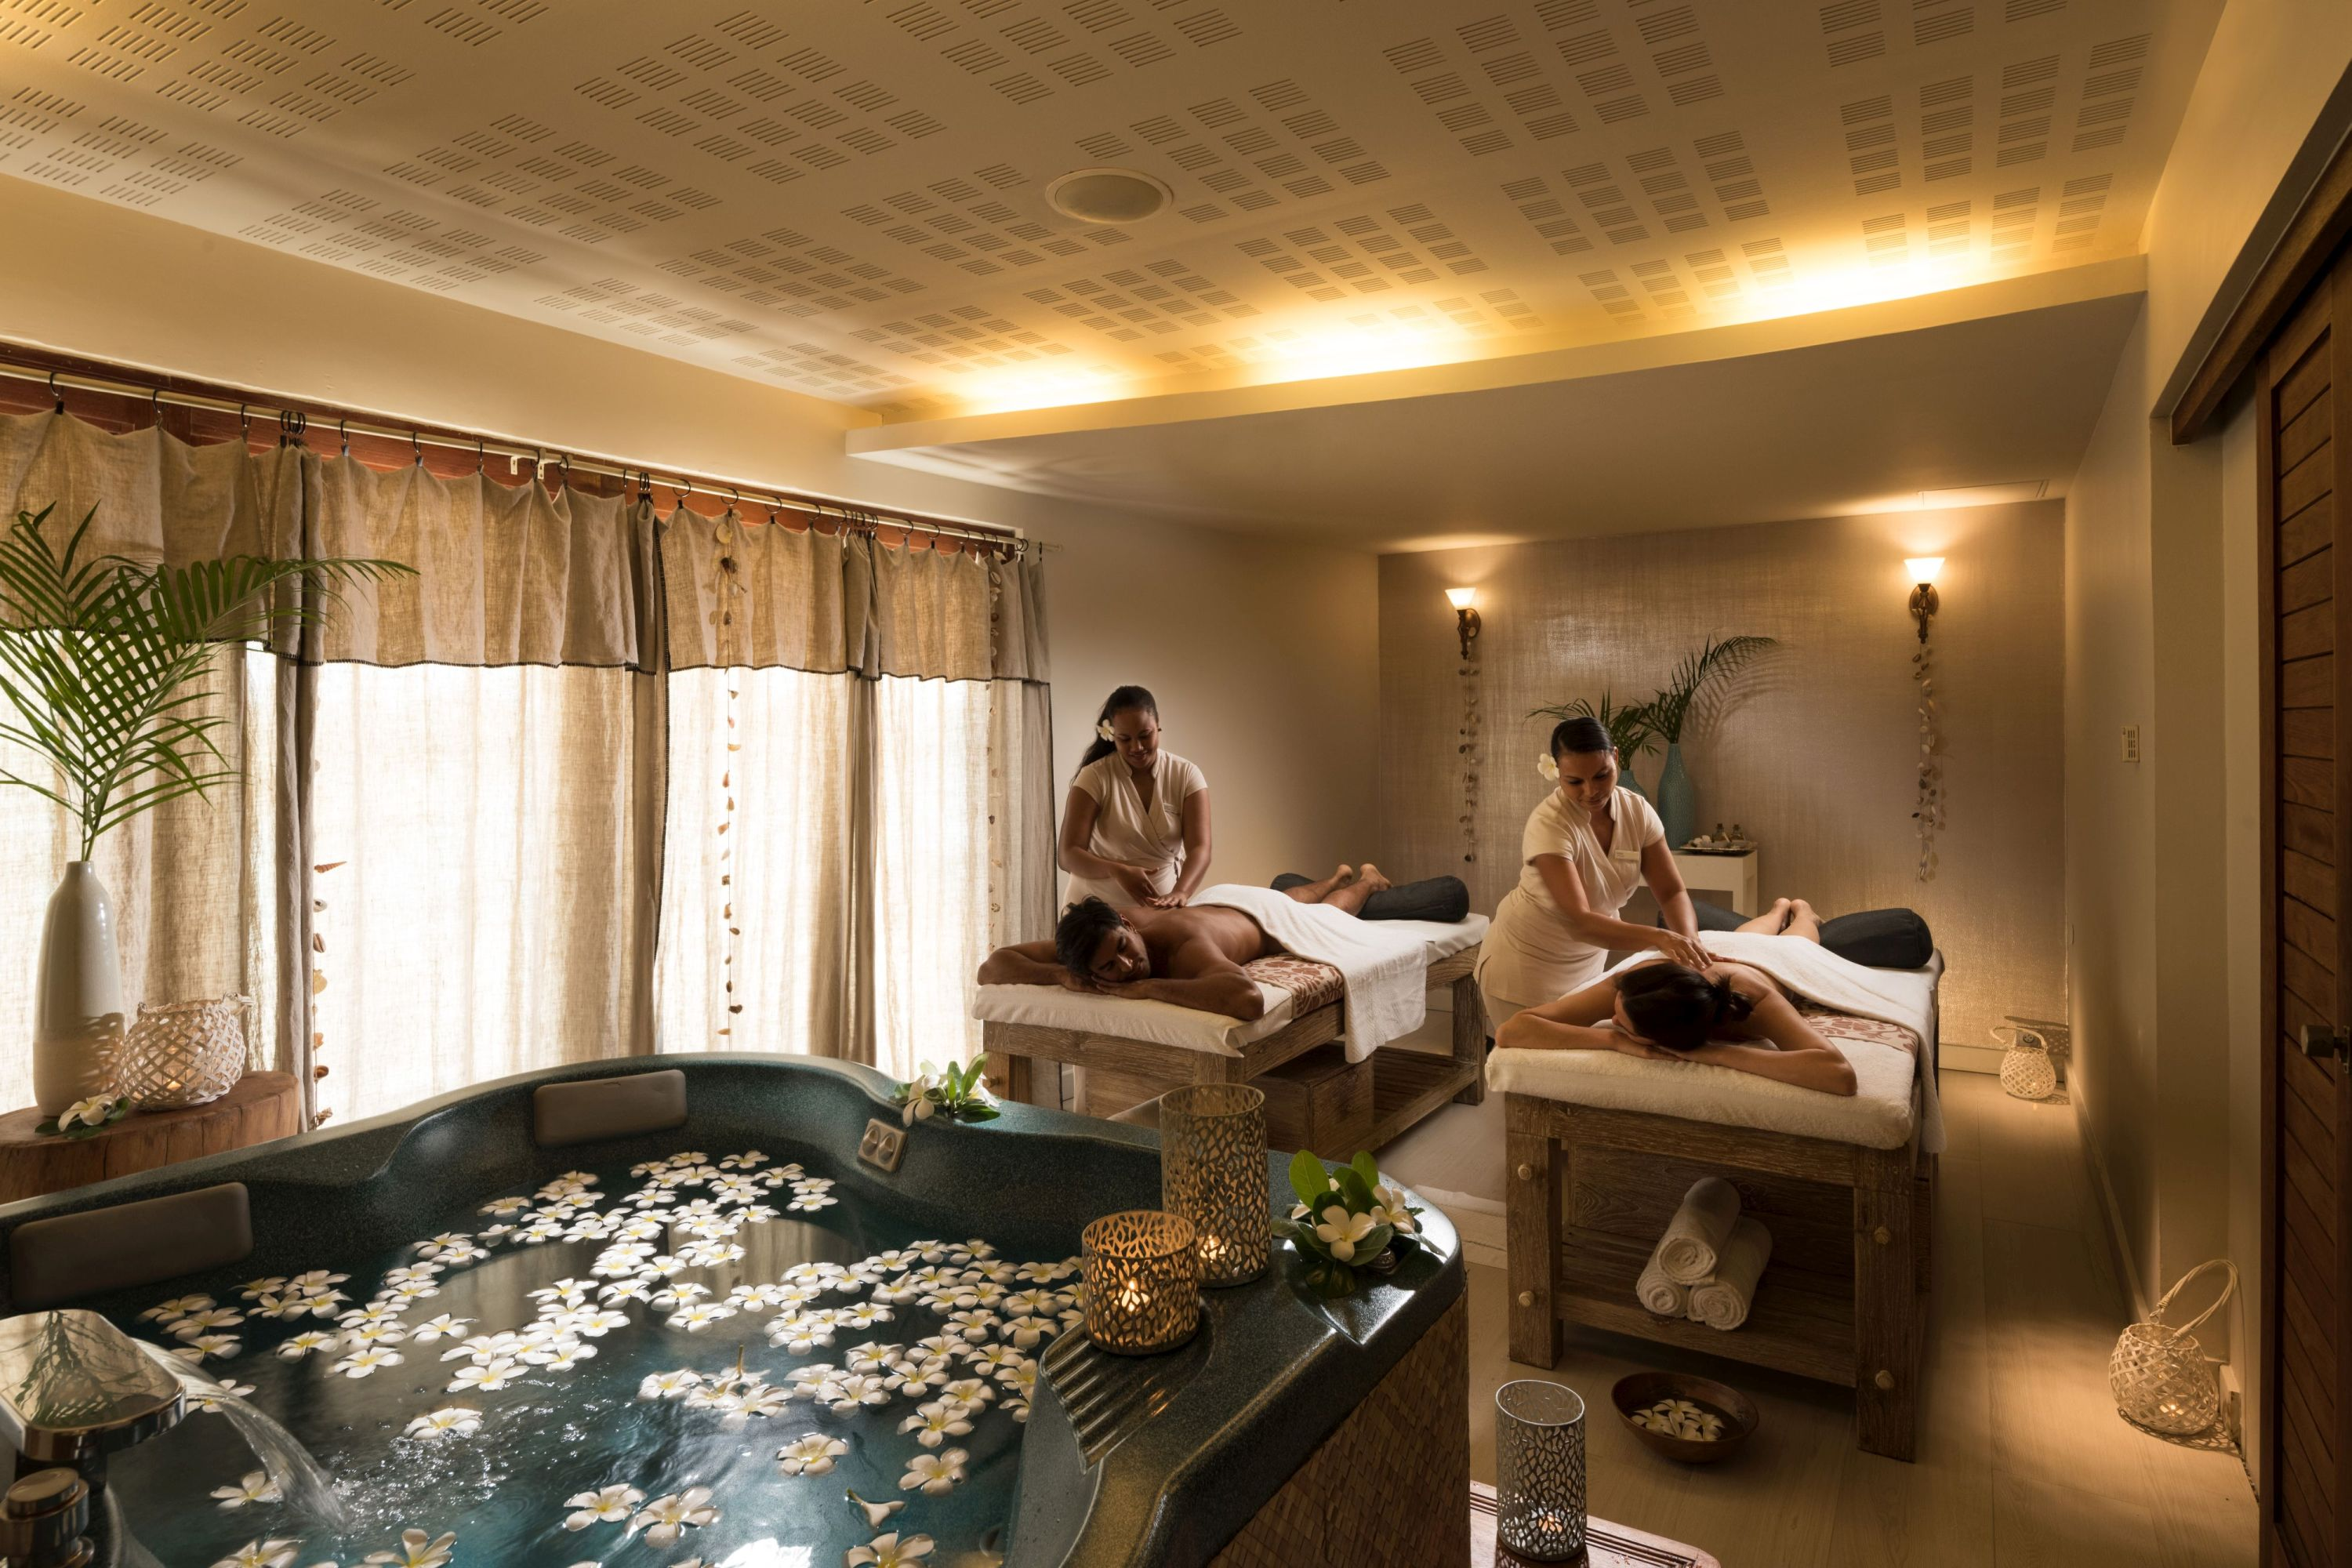 https://tahititourisme.com/wp-content/uploads/2019/06/Spa-Treatment-Room.jpg